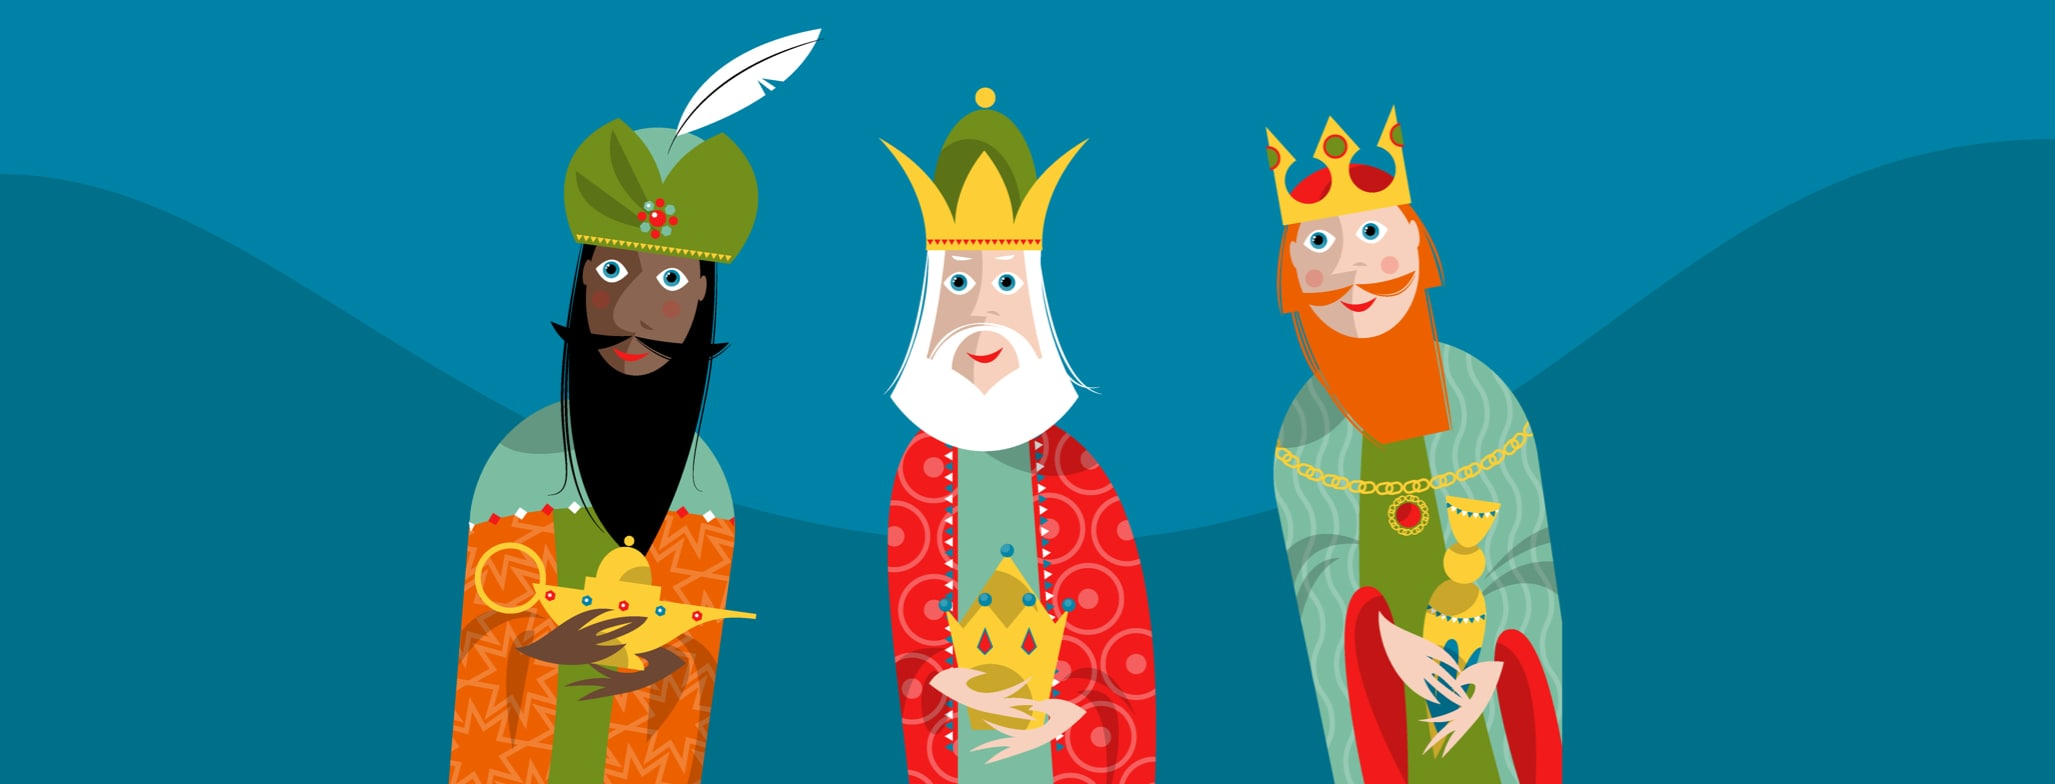 three wise men holding gifts suspiciously